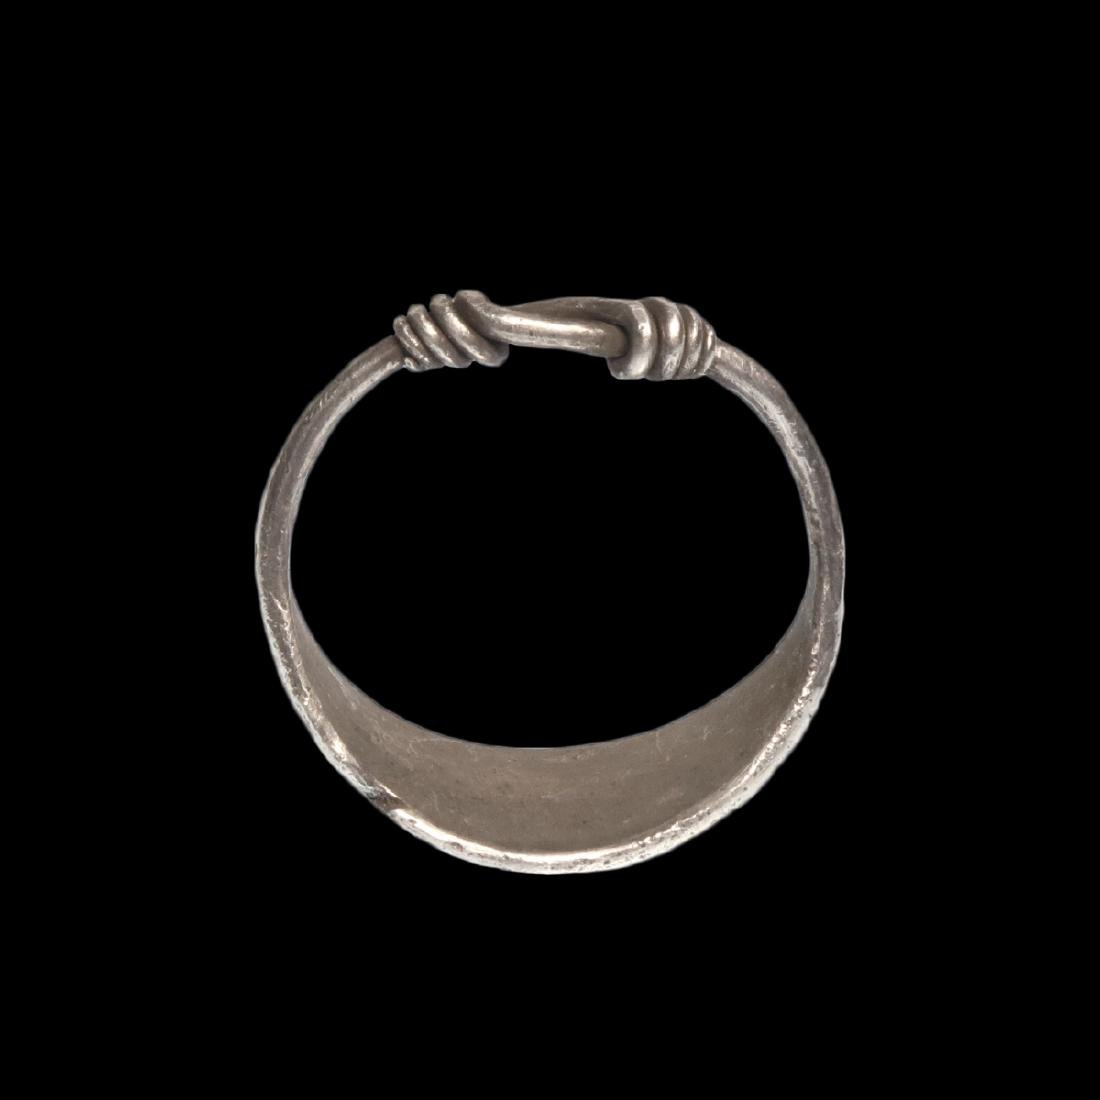 Viking Silver Ring with Wolf's Tooth Decoration - 6